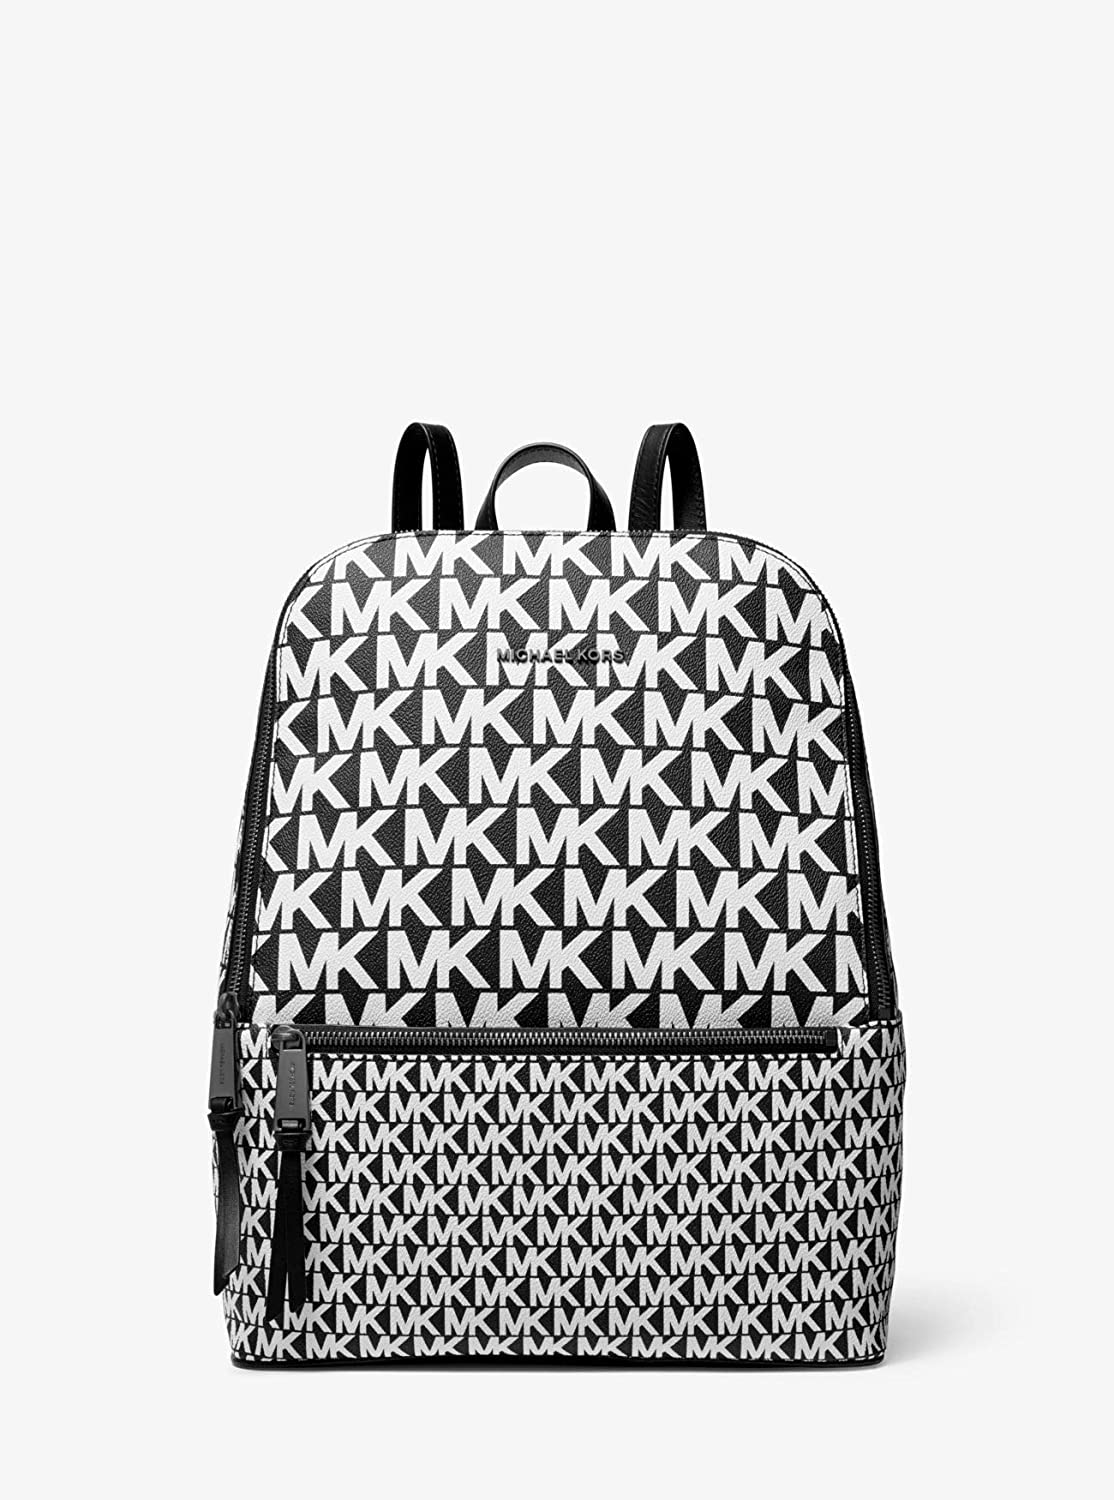 Michael Kors Toby Ladies Medium Black/White Leather Casual Backpack 30T9UOYB2B-002